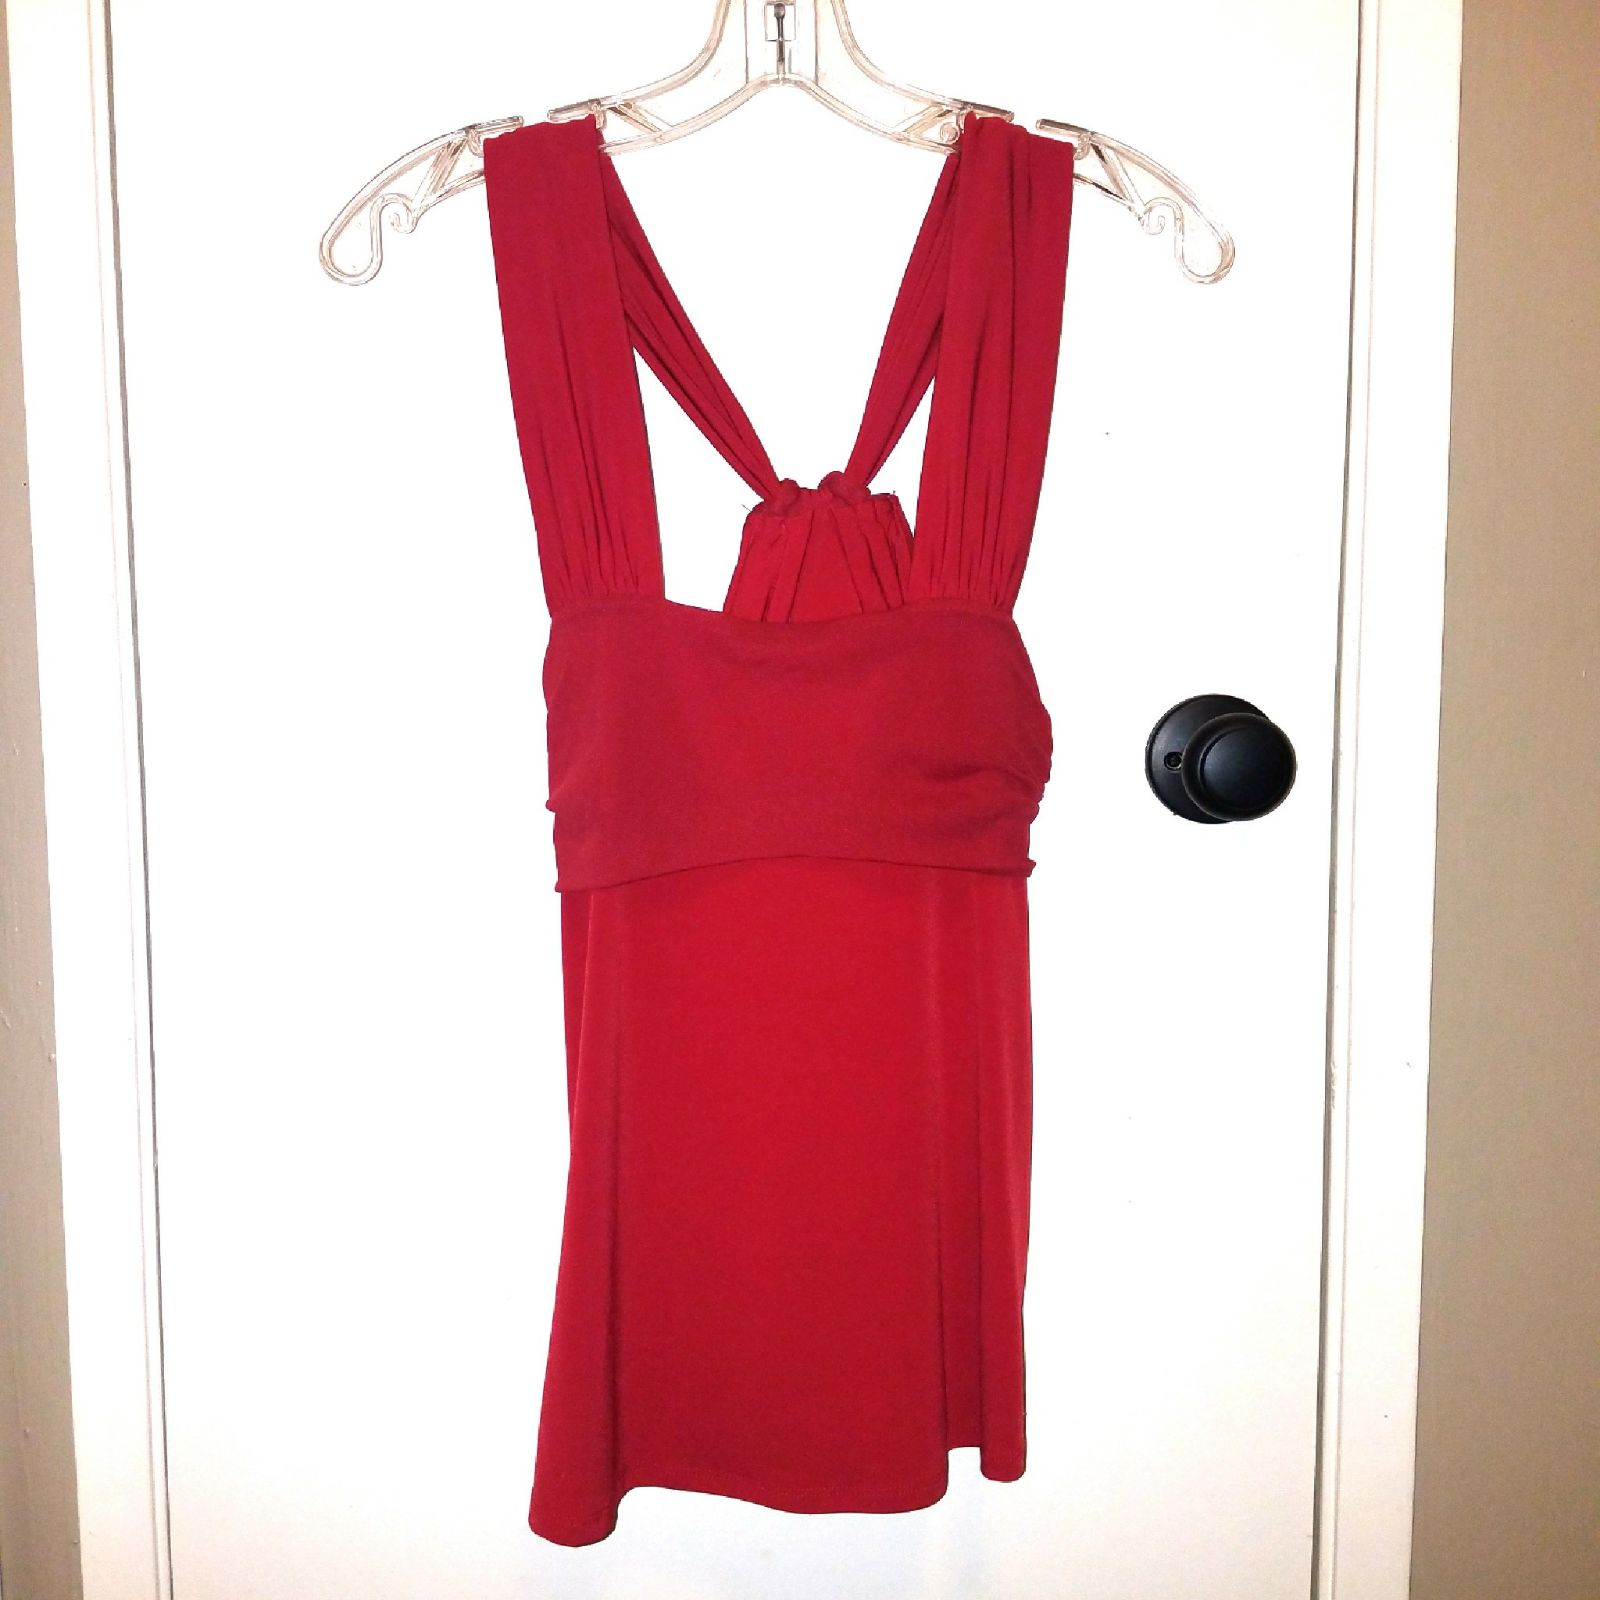 Romantic Red Knotted Tank